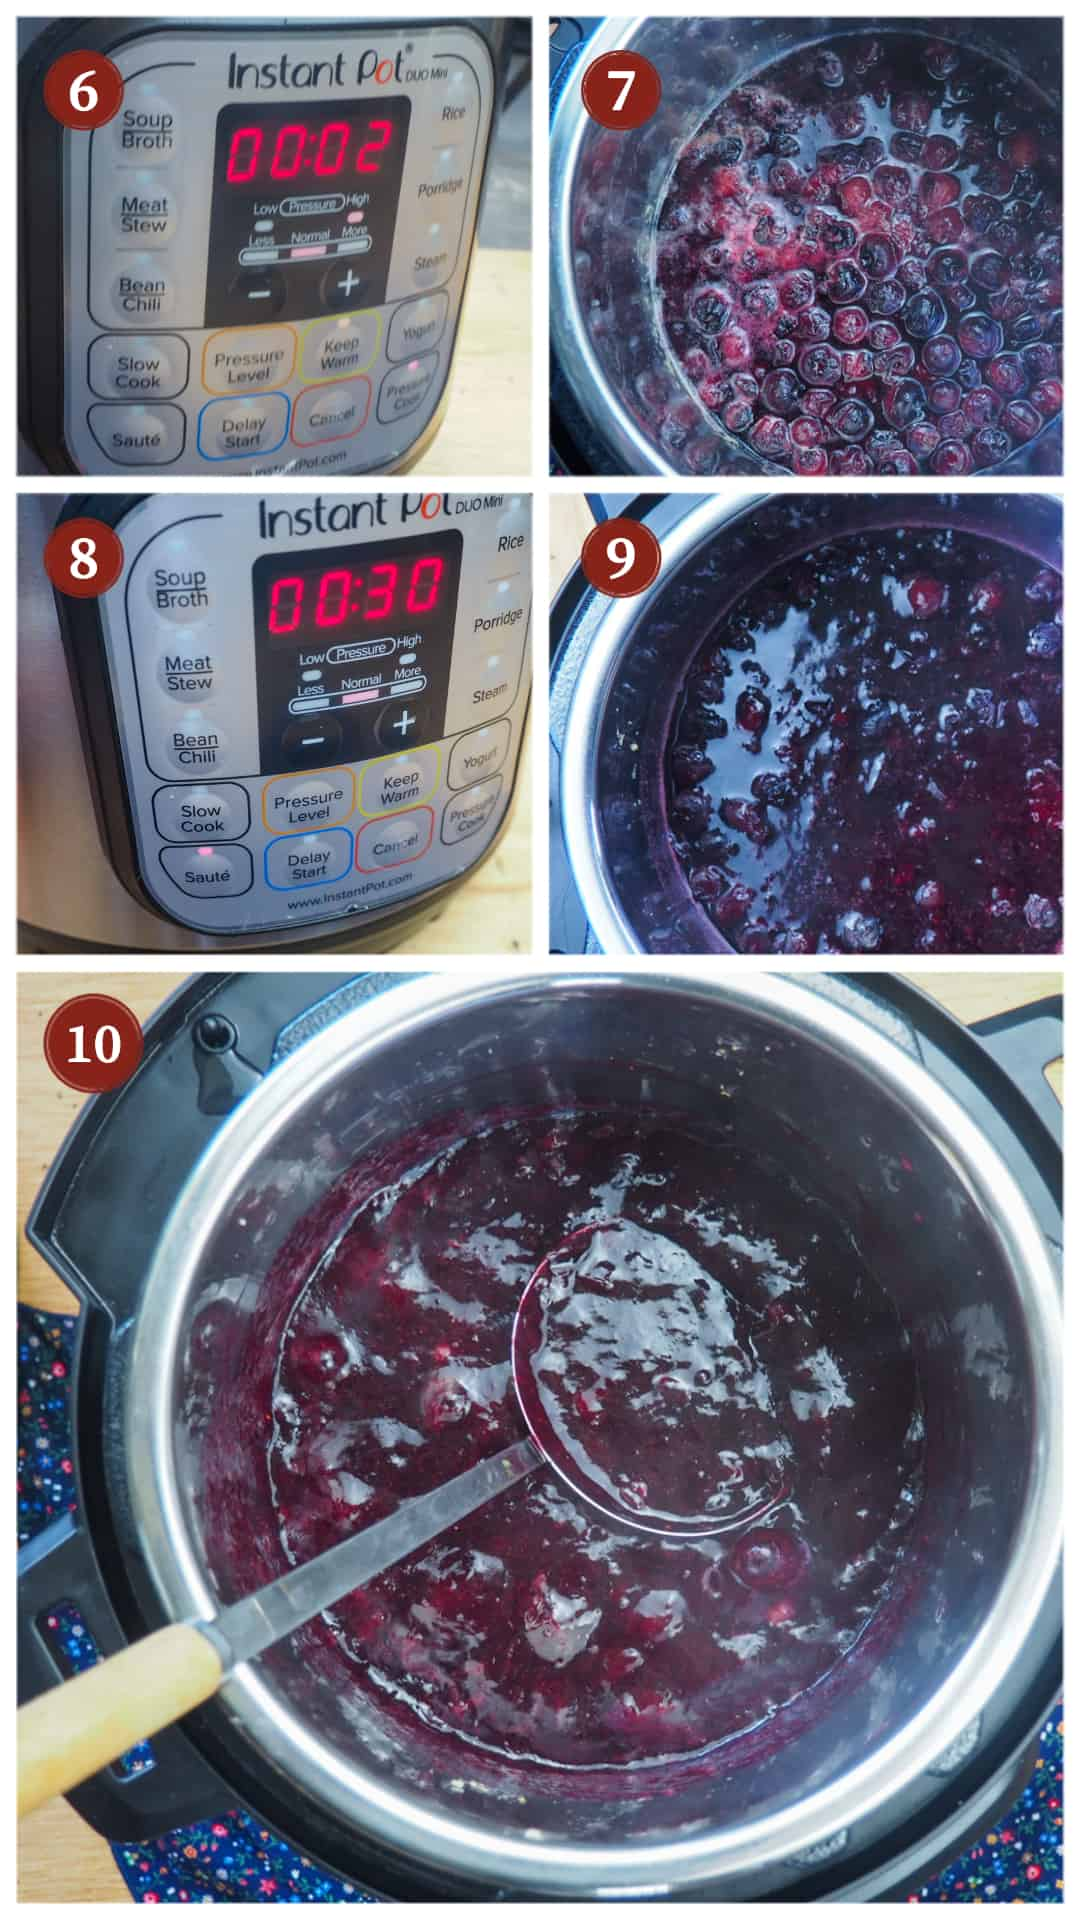 A collage of images showing the process of making paleo blueberry jam in an Instant Pot, steps 6 - 10.